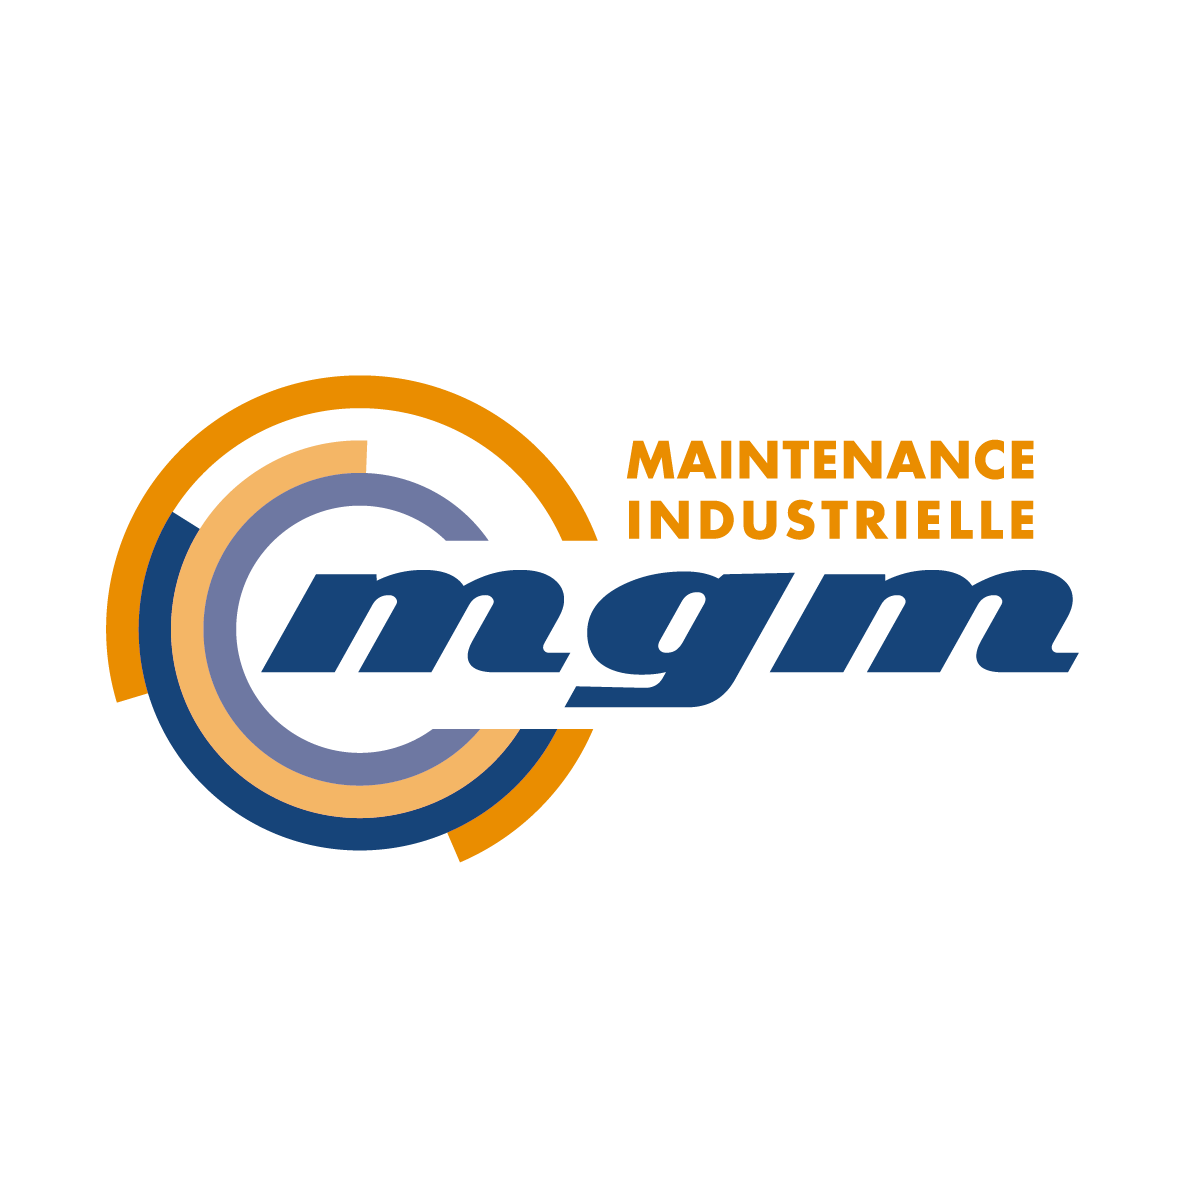 1631190470-mgm-maintenance-industrielle.png